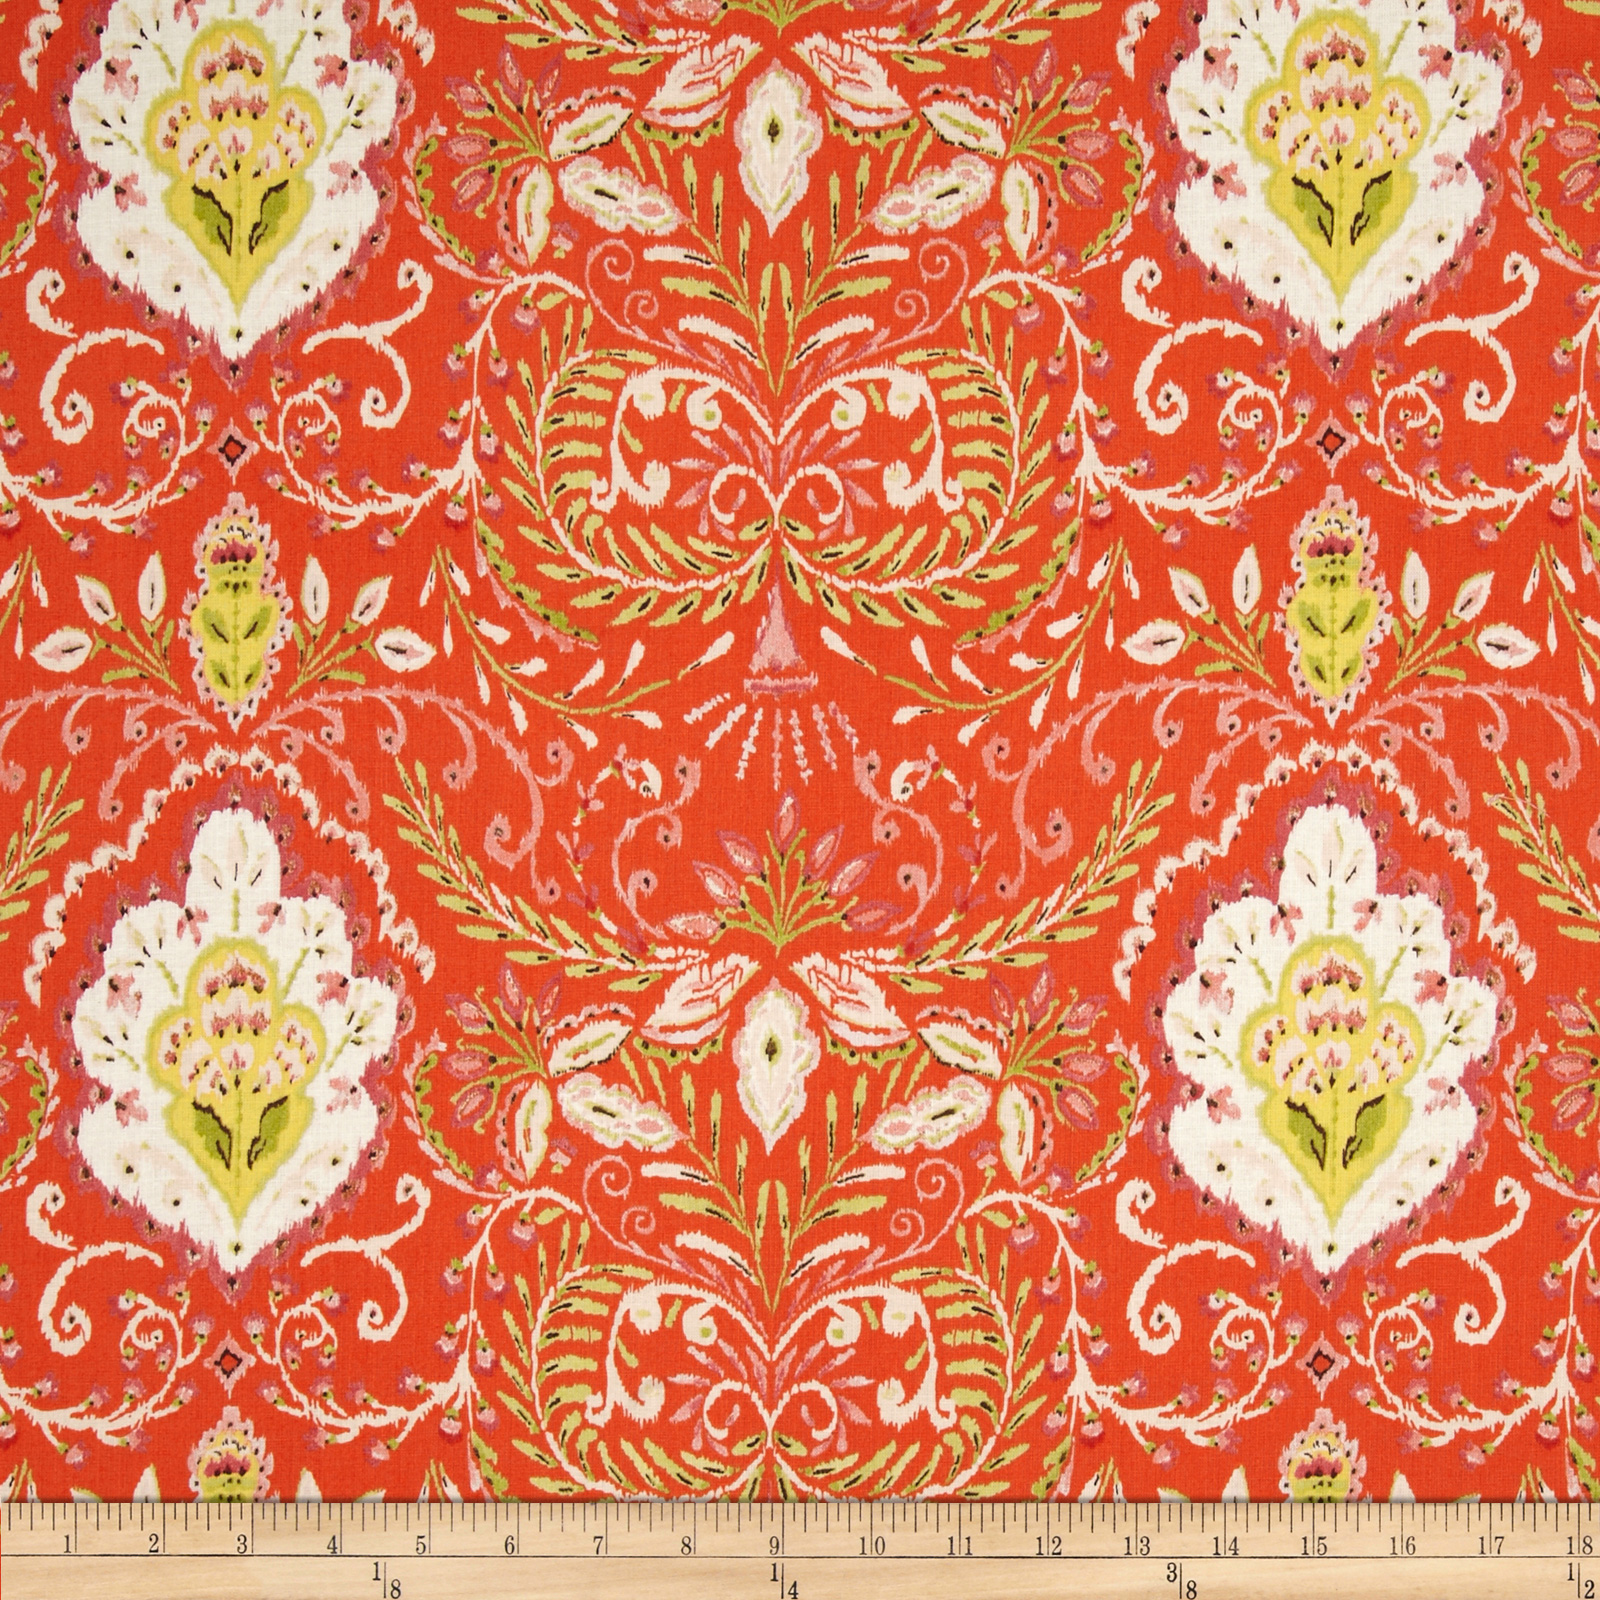 Tangier Ikat Vine Orange Fabric